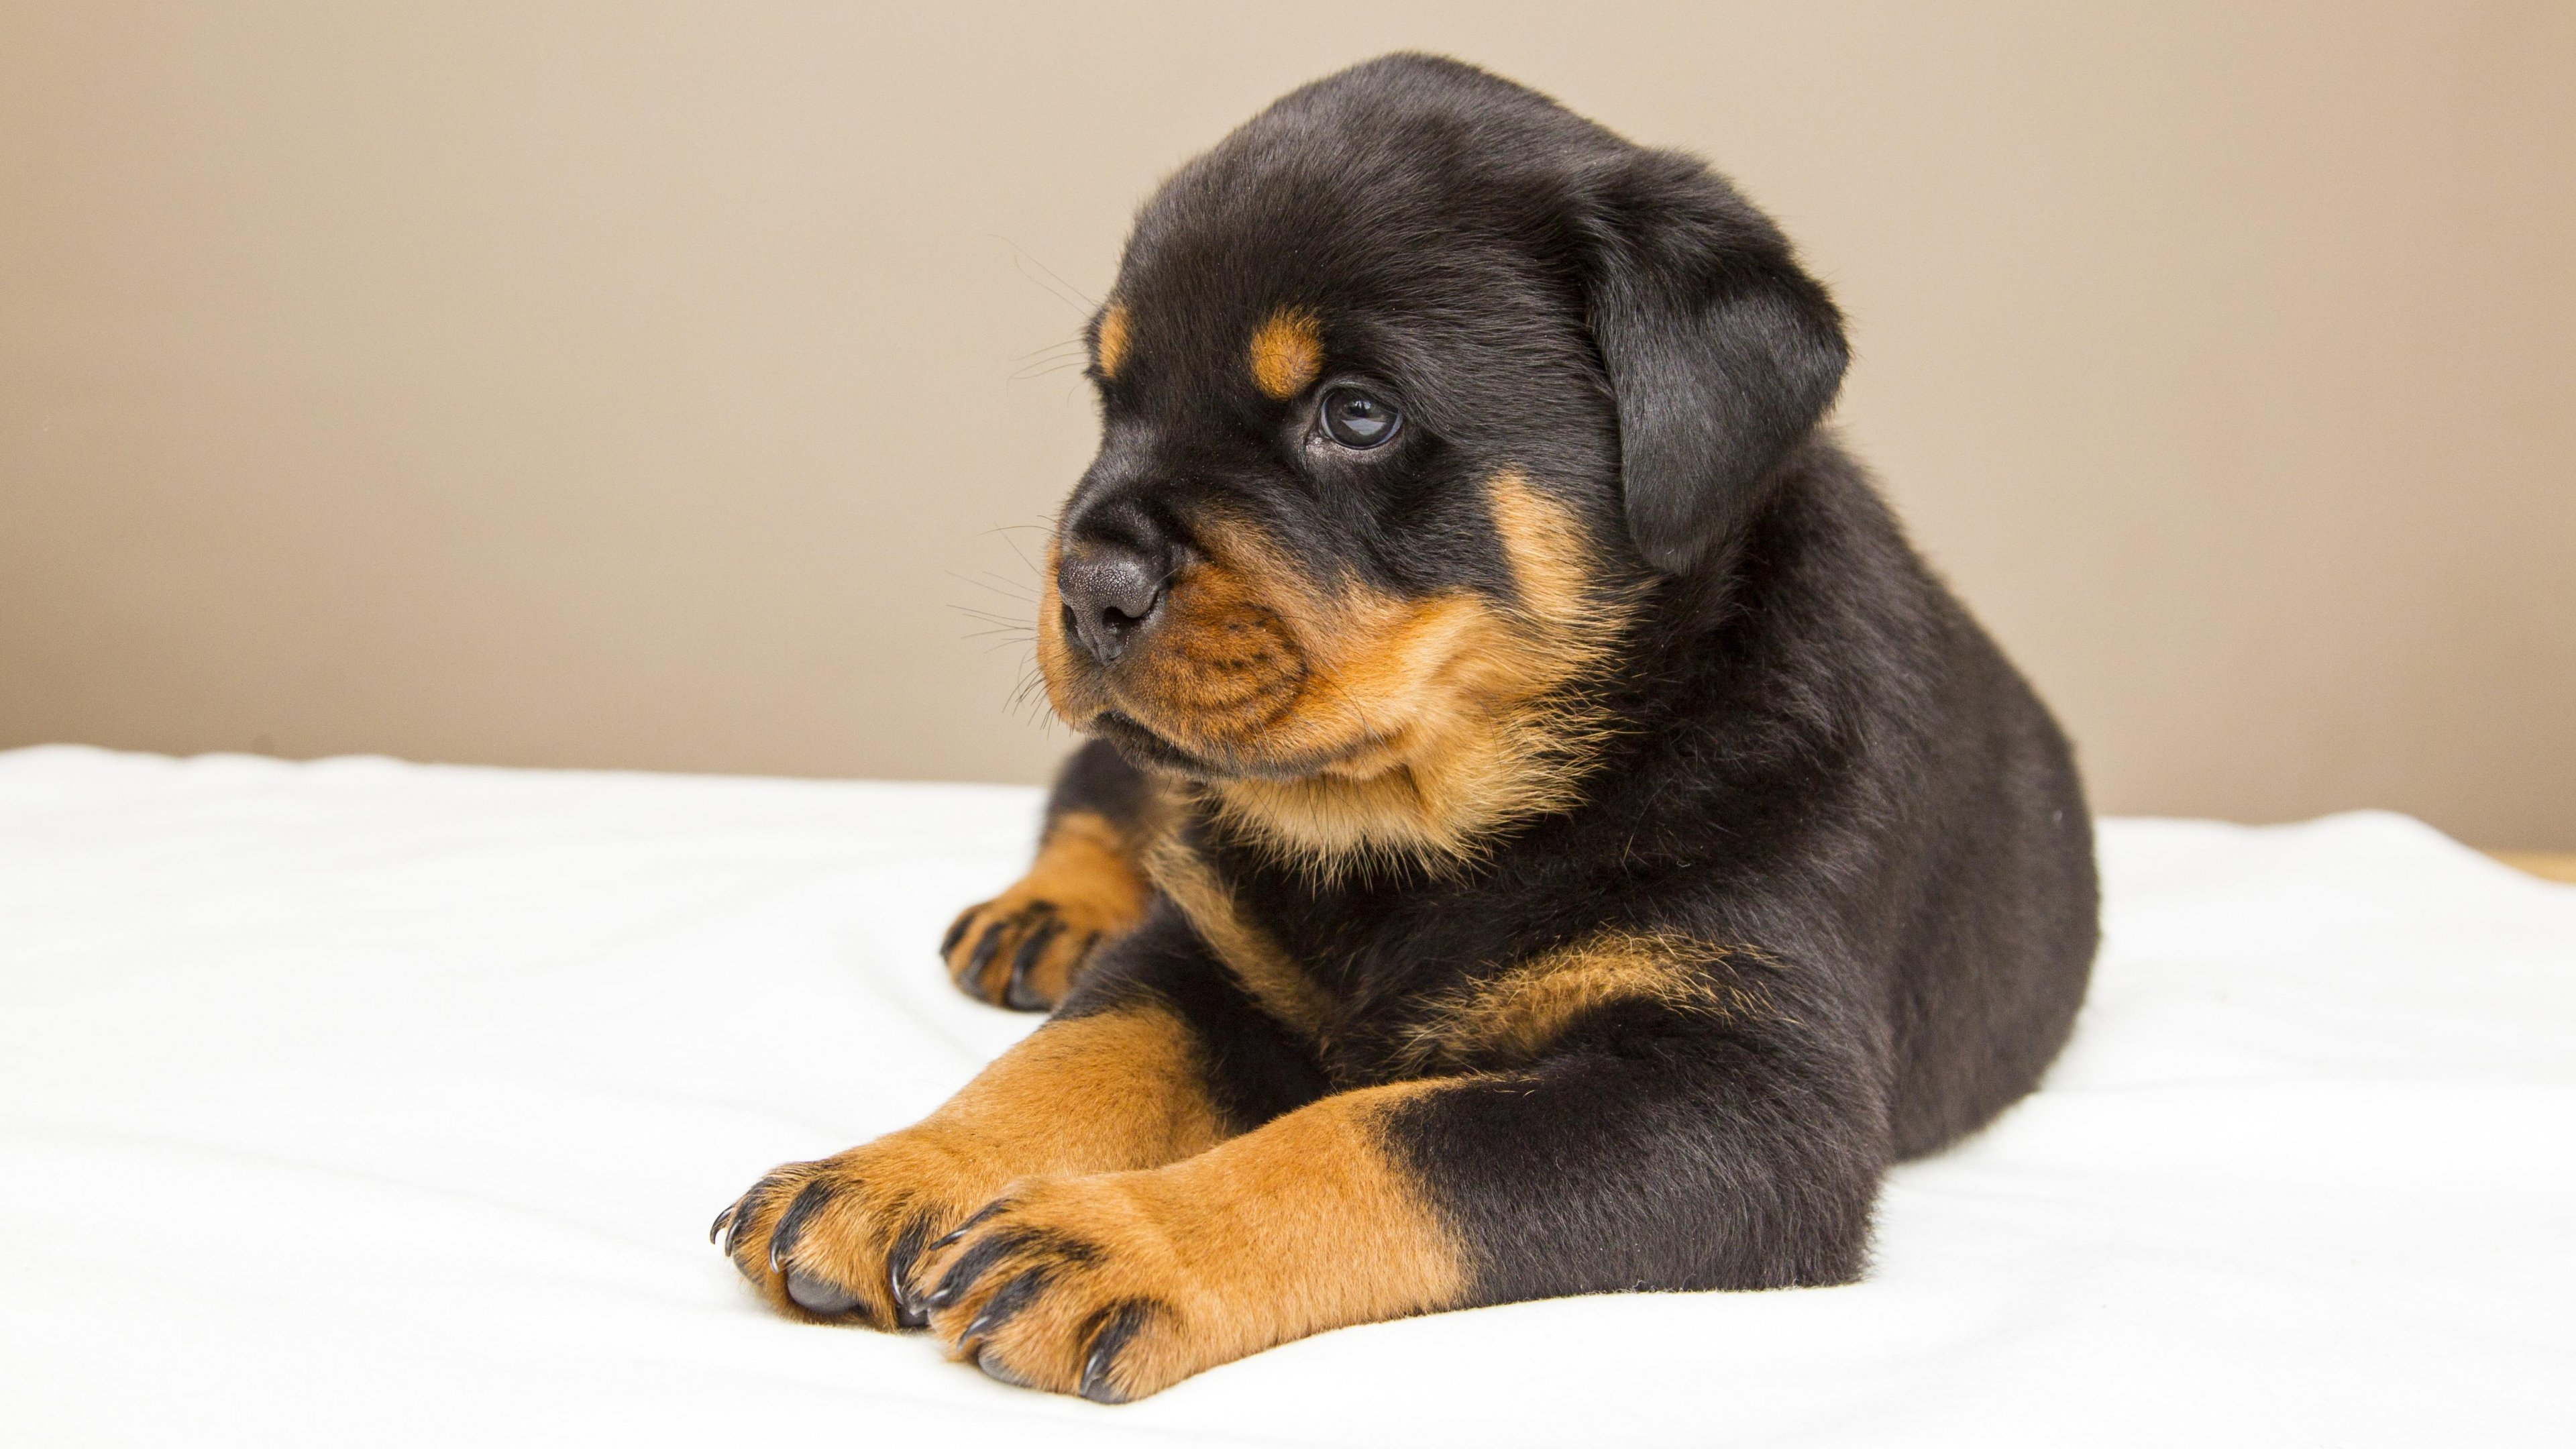 Rottweiler Puppy Wallpaper Iphone Android Desktop Backgrounds